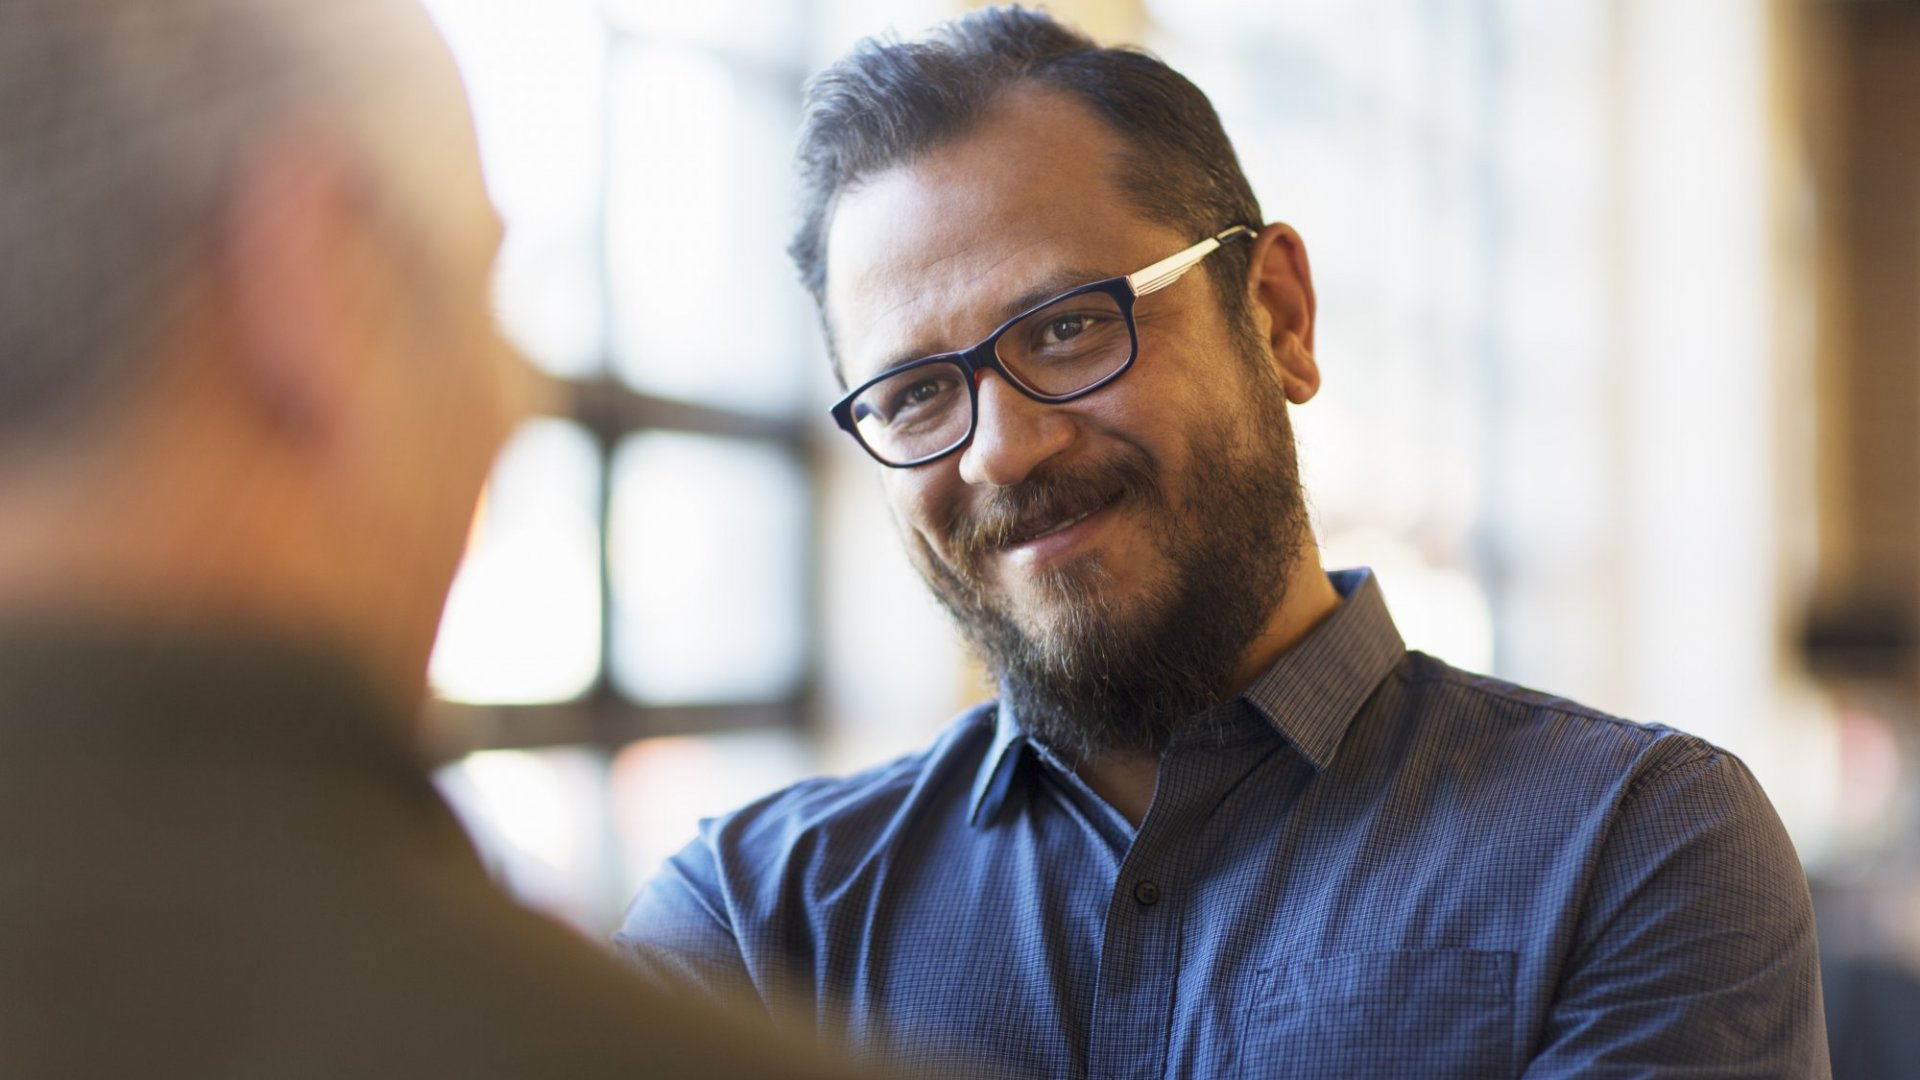 The 1 Thing All Emotionally Intelligent Companies Understand About Their Clients